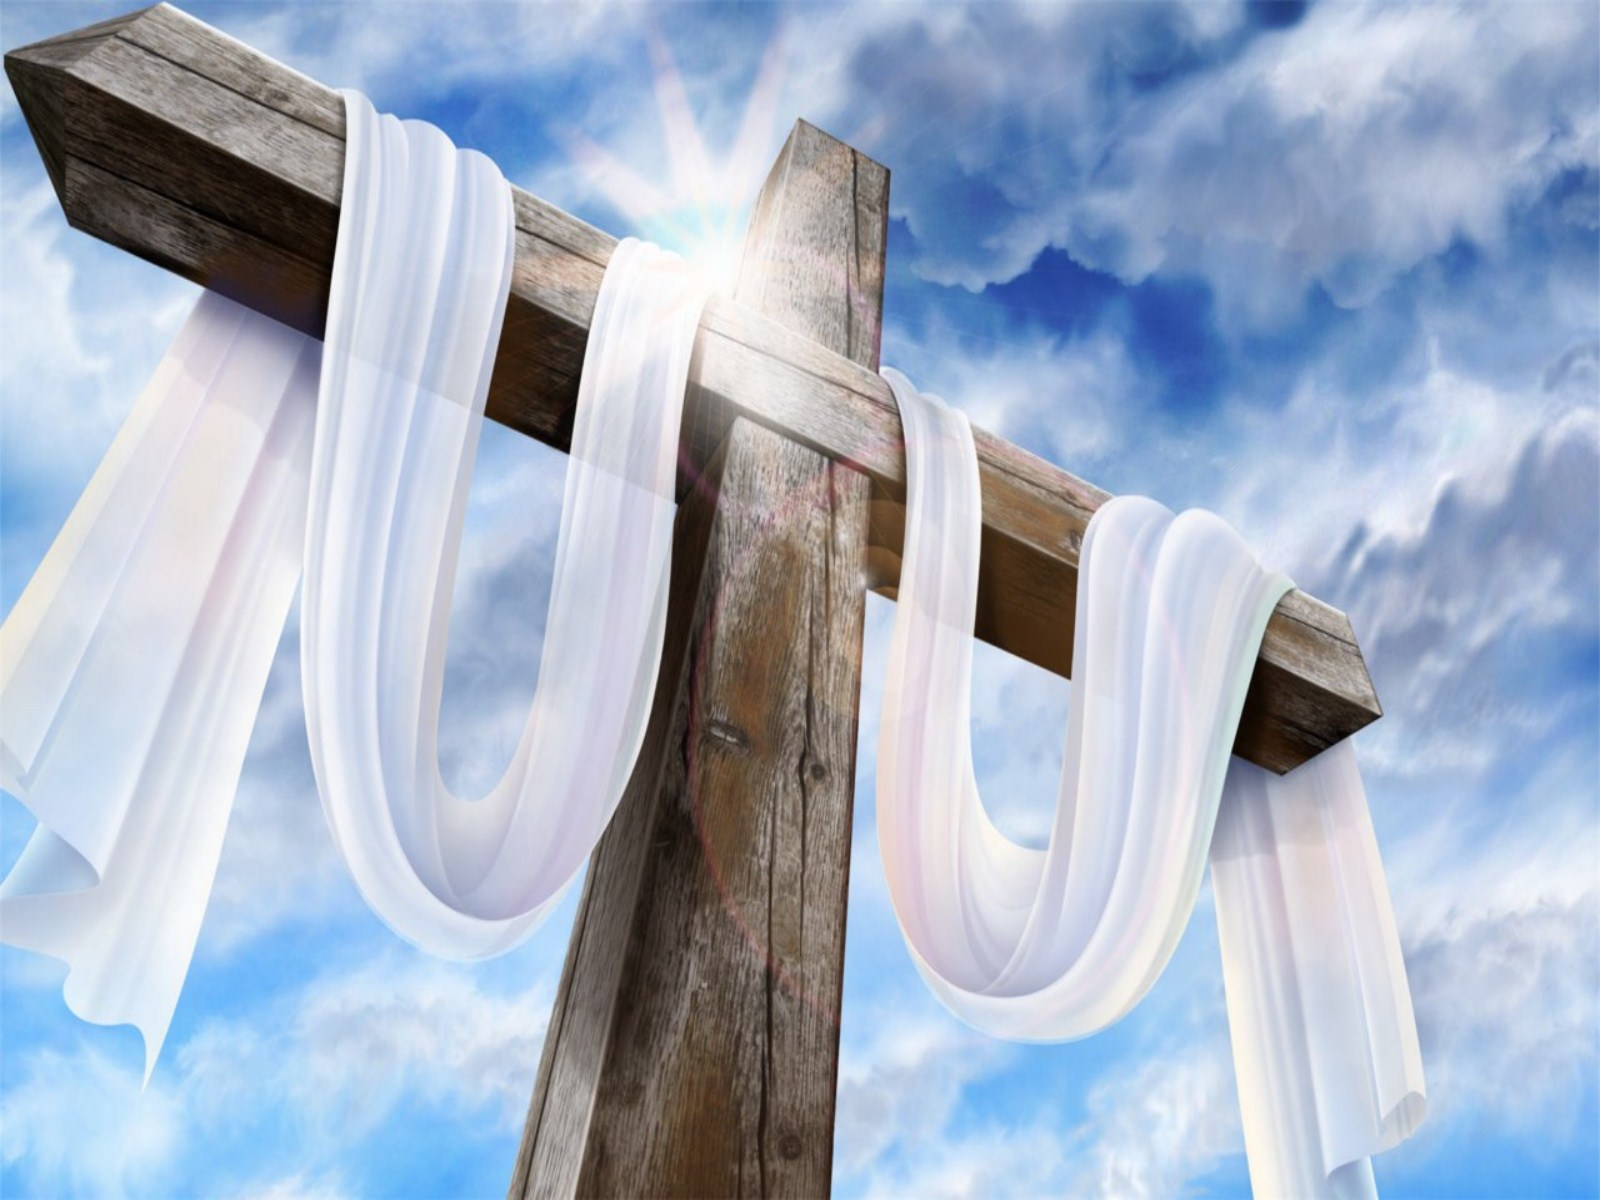 christian wallpaper easter   wwwhigh definition wallpapercom 1600x1200